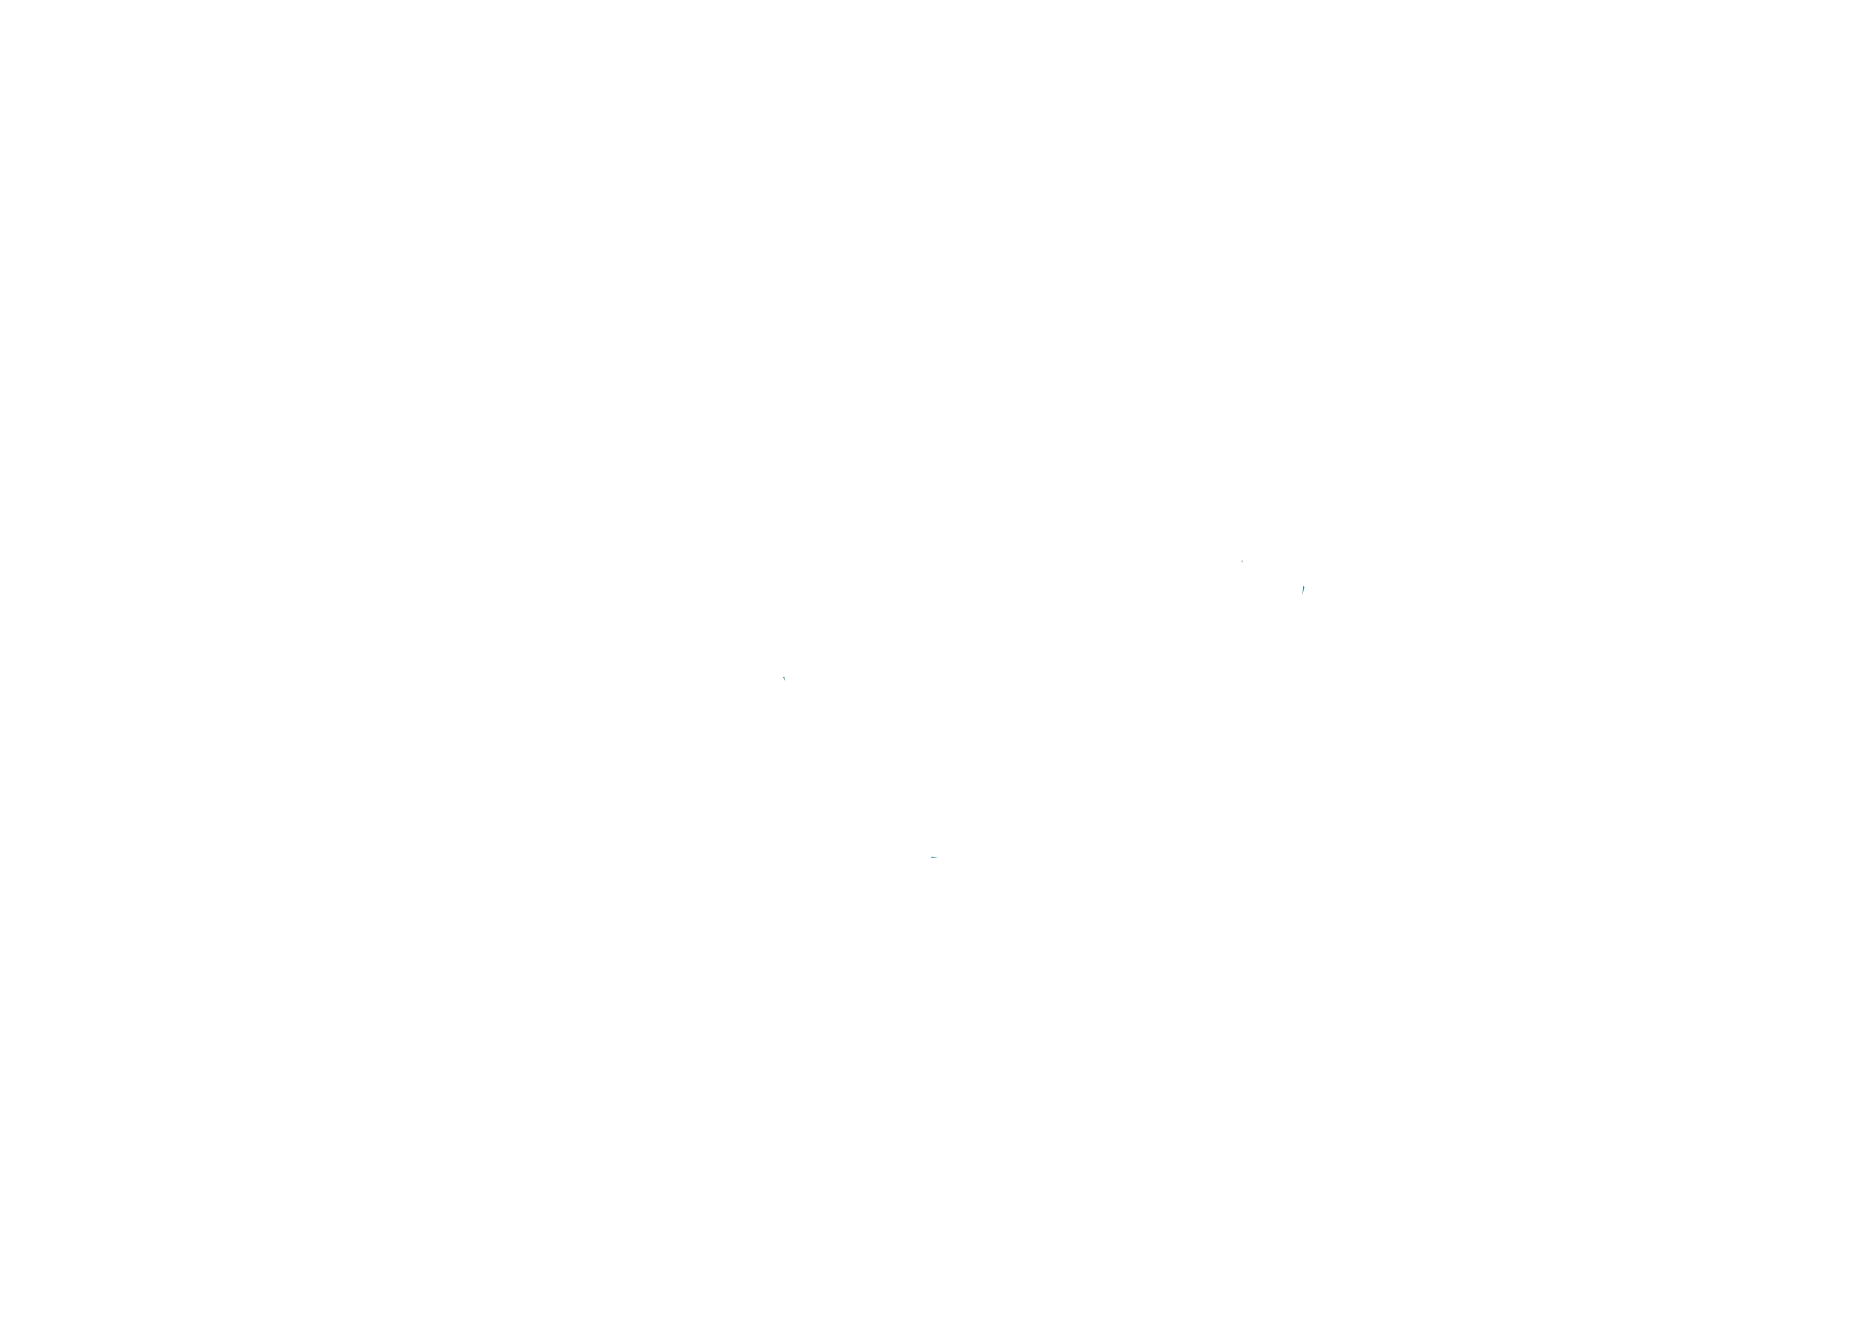 Madi Invest AS